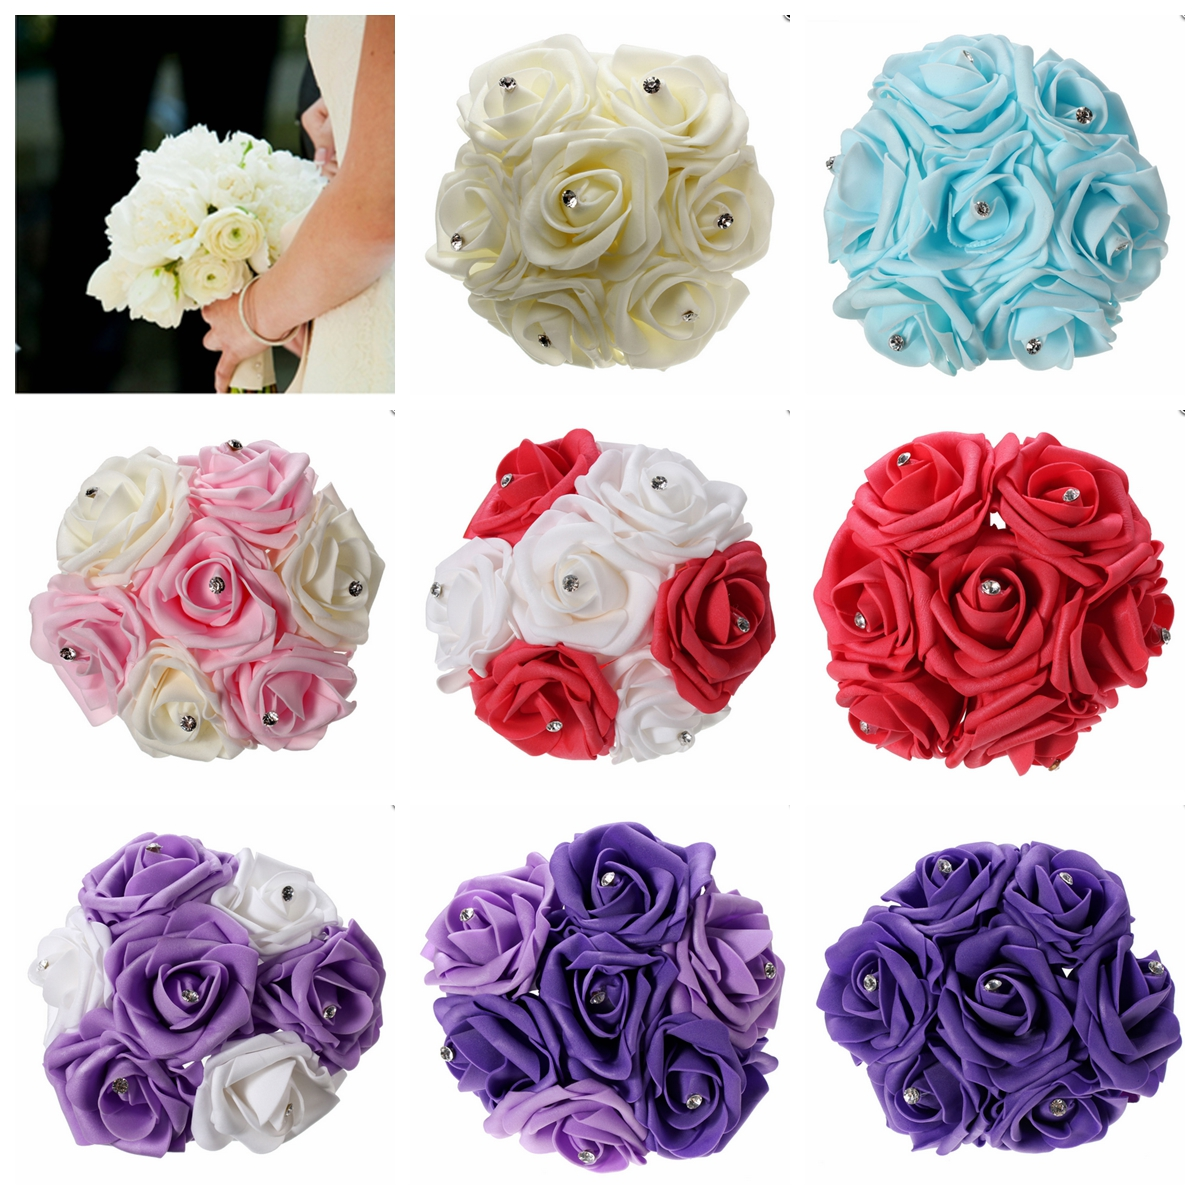 1 Bunch bridalampampweddingsupplie Aartificial Rose Flower Craft Flower Bridal Rhinestone Crystal Bouquet Wedding Party Decor